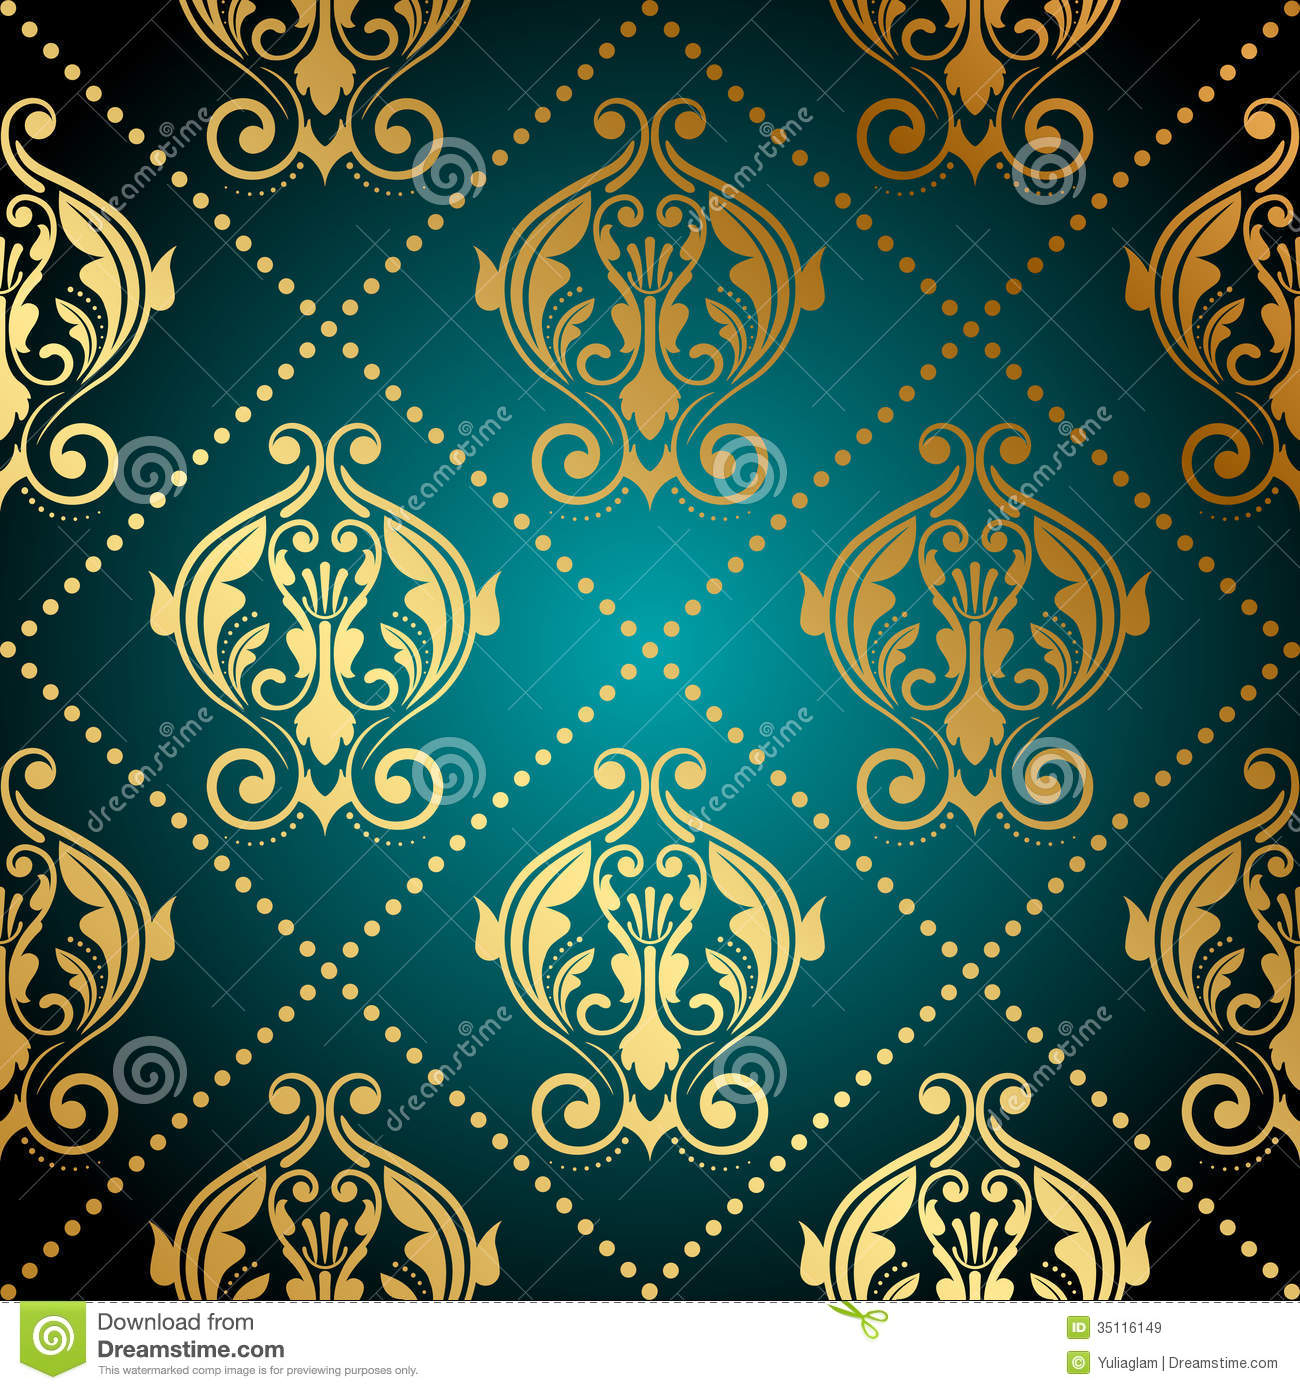 Turquoise And Gold Ornate Wallpaper Stock Vector